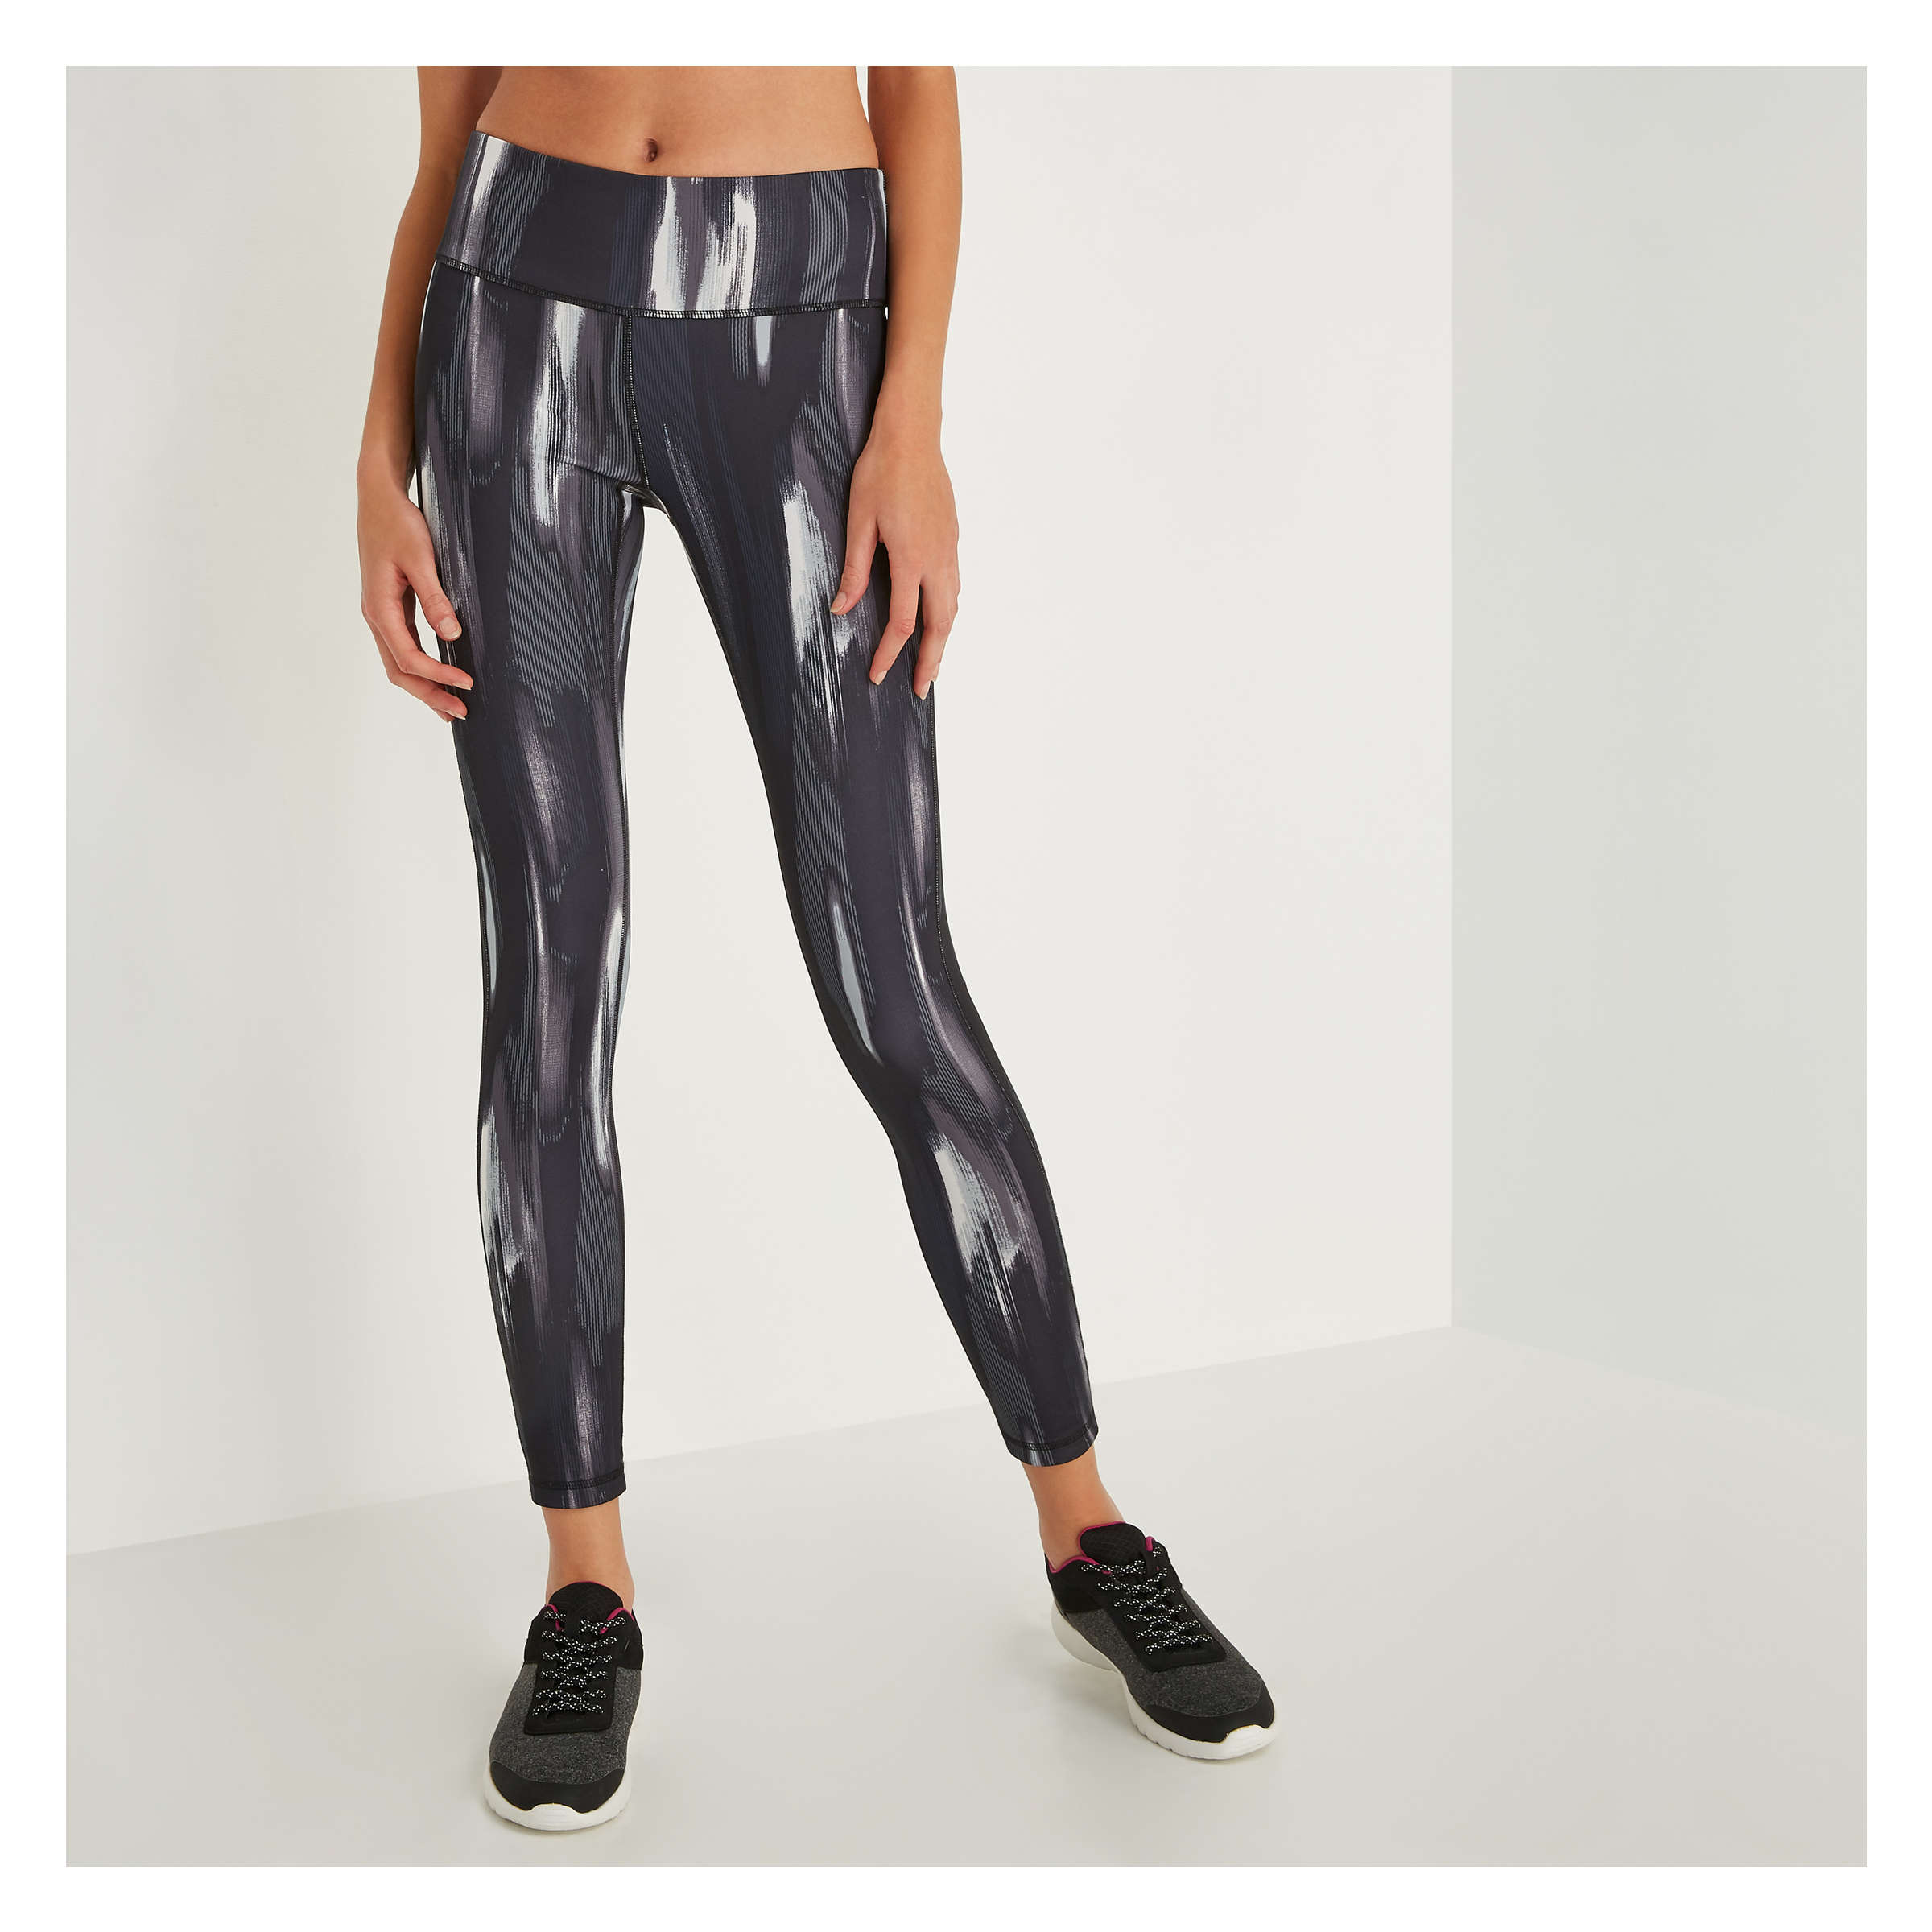 1a1ca01ab2e87 Reversible Active Legging in Black from Joe Fresh